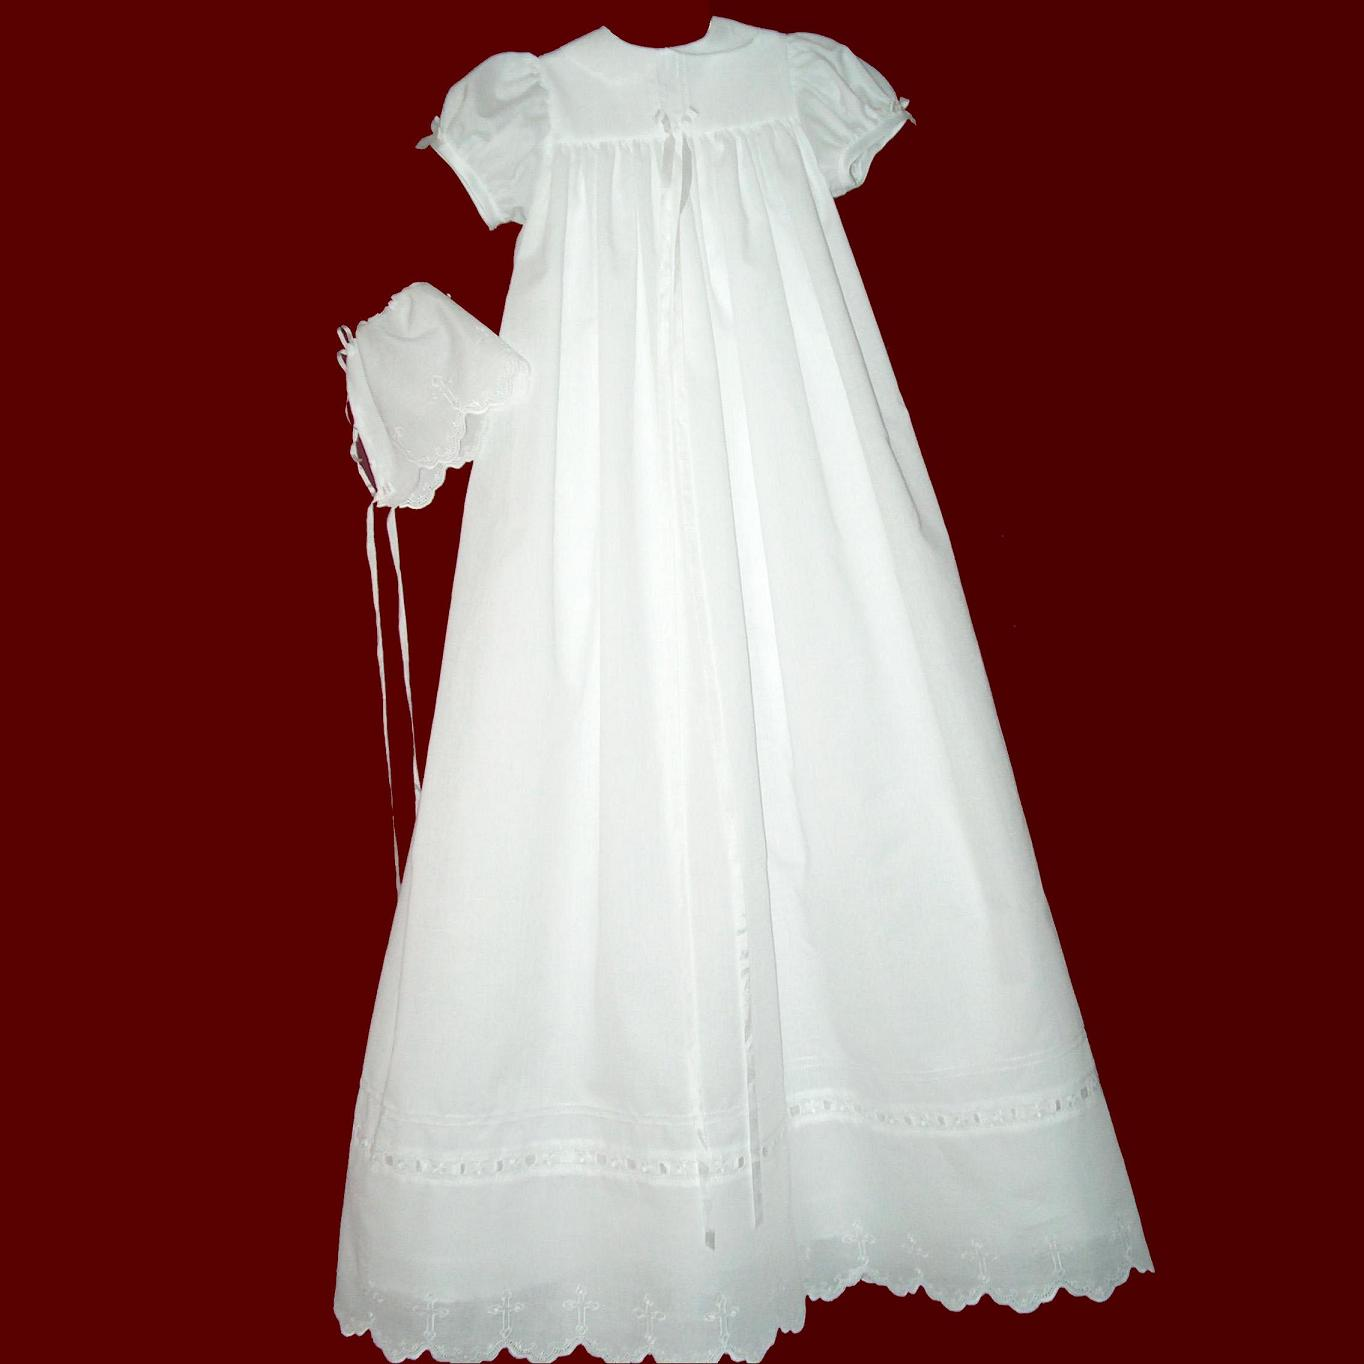 Girls christening gowns smocked treasures for Making baptism dress from wedding gown